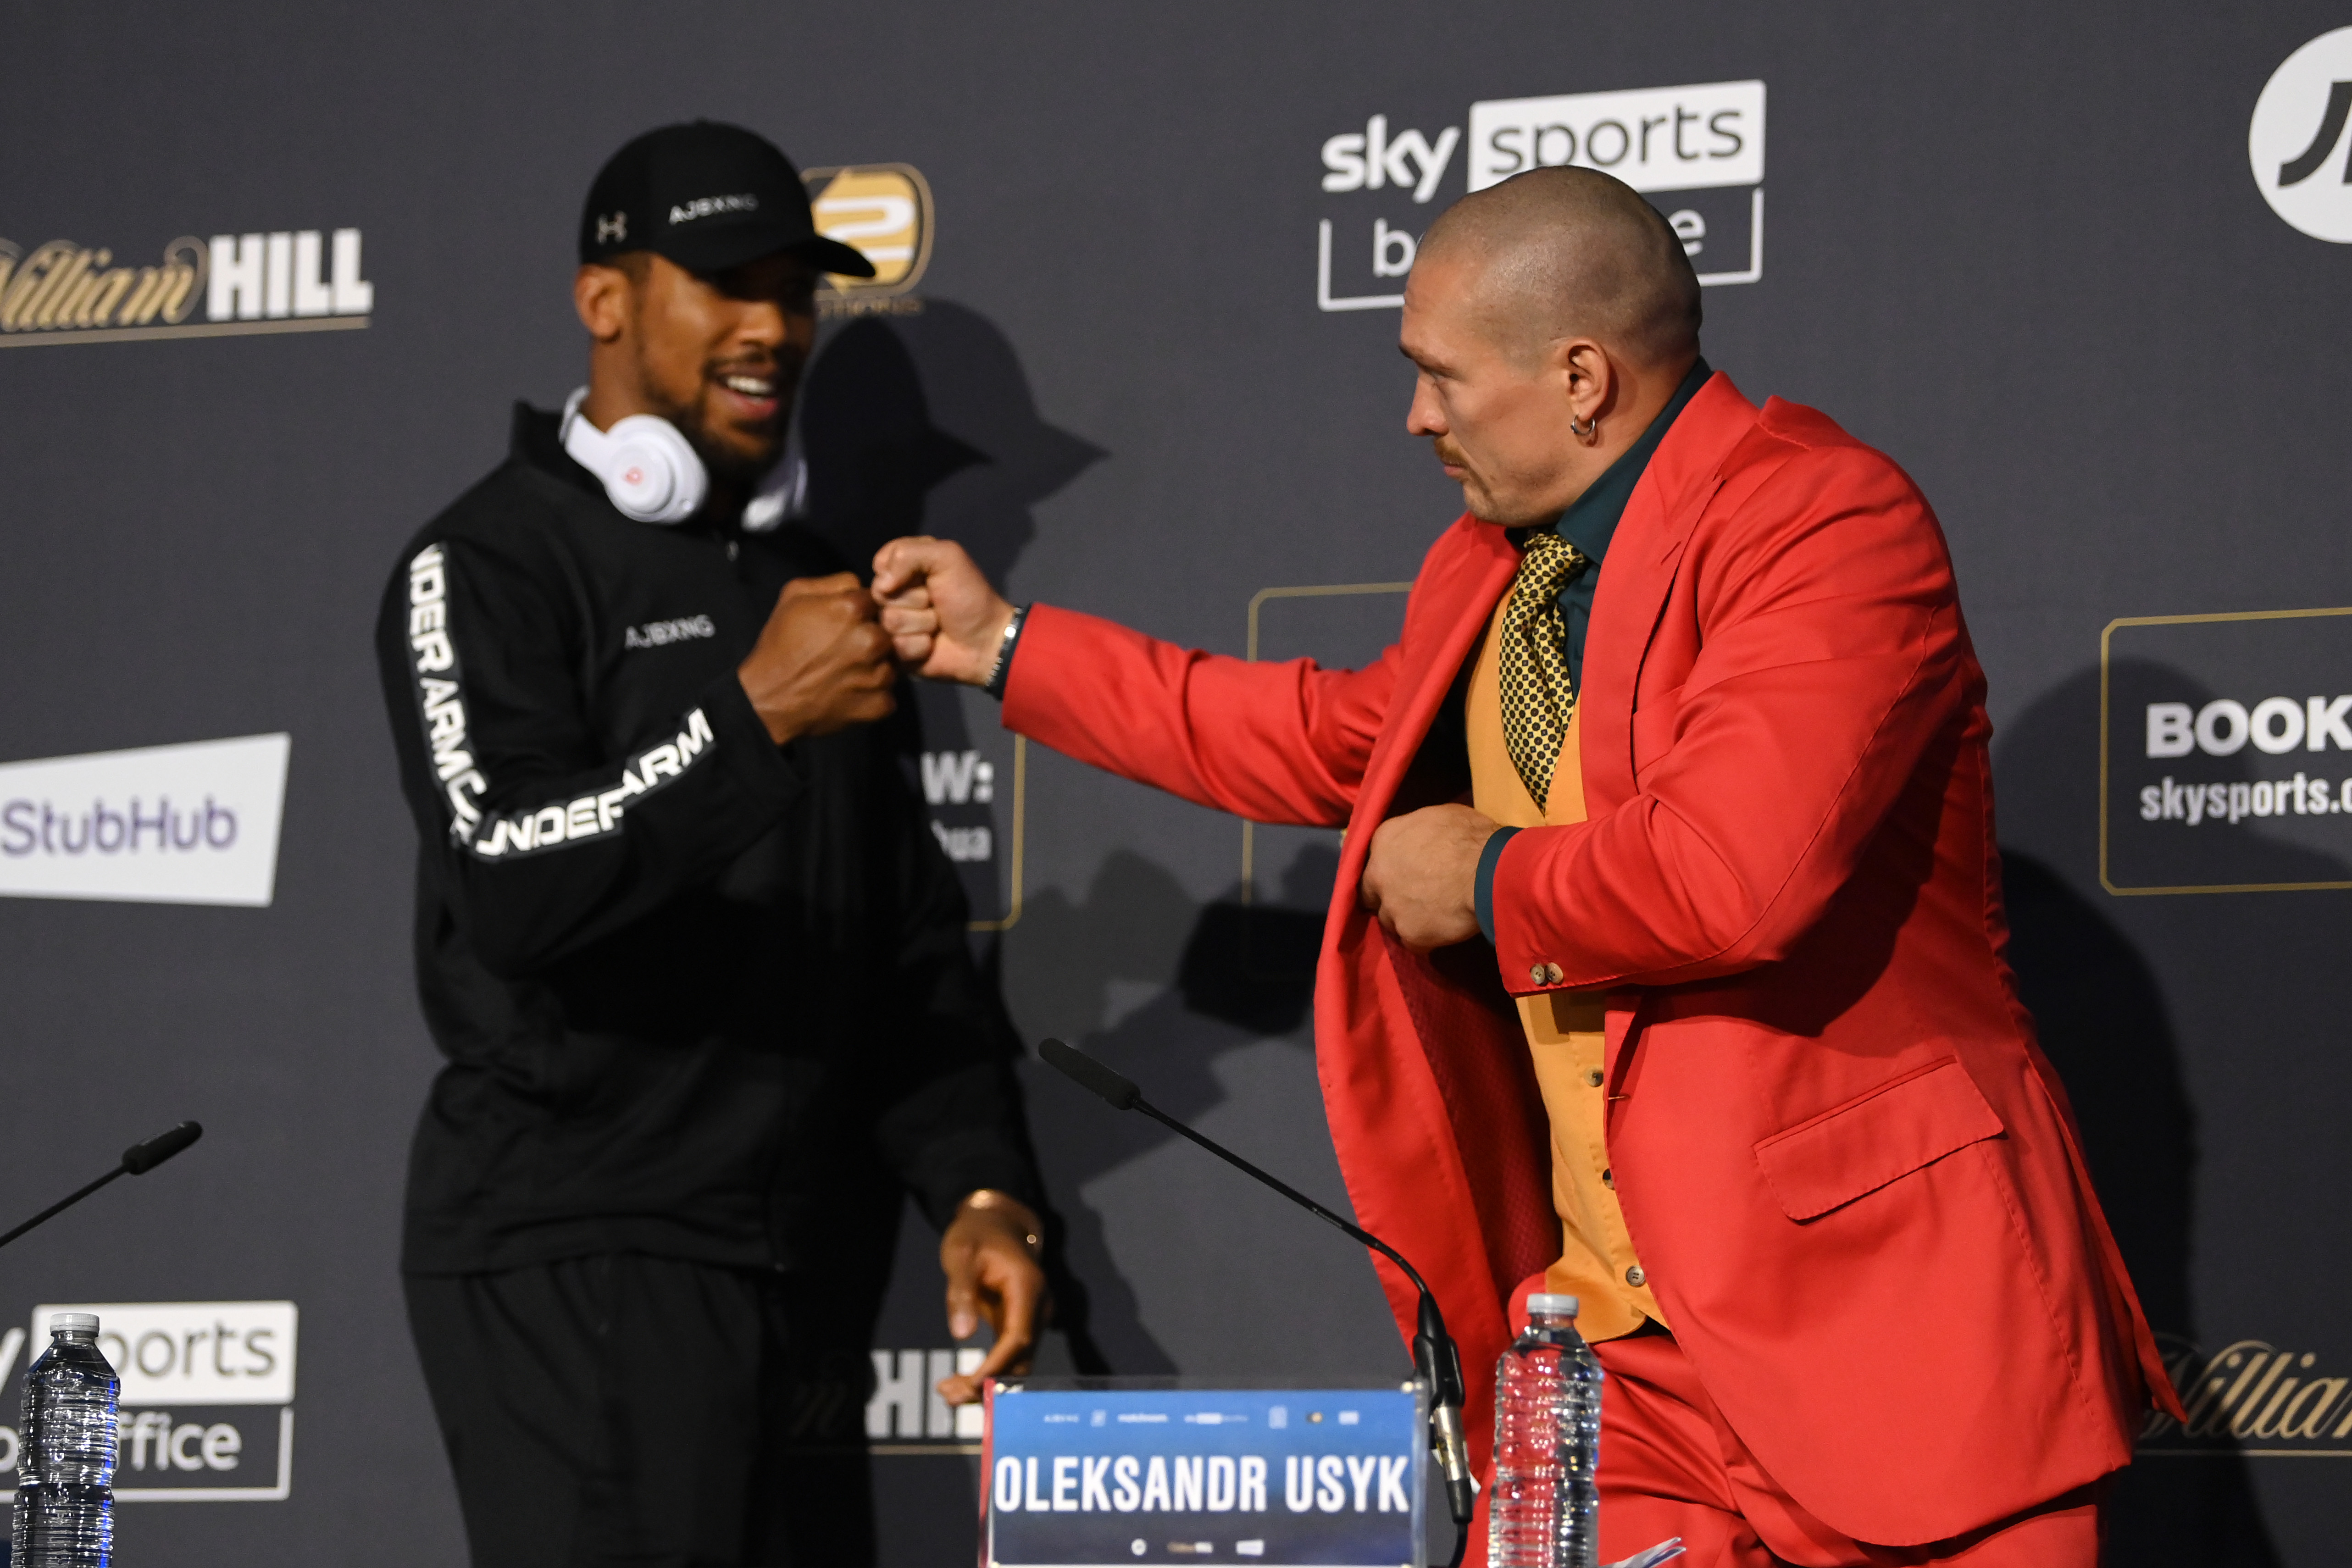 Anthony Joshua and Oleksandr Usyk bump fists during a Press Conference ahead of the heavyweight fight between Anthony Joshua and Oleksandr Usyk at Tottenham Hotspur Stadium on September 23, 2021 in London, England.